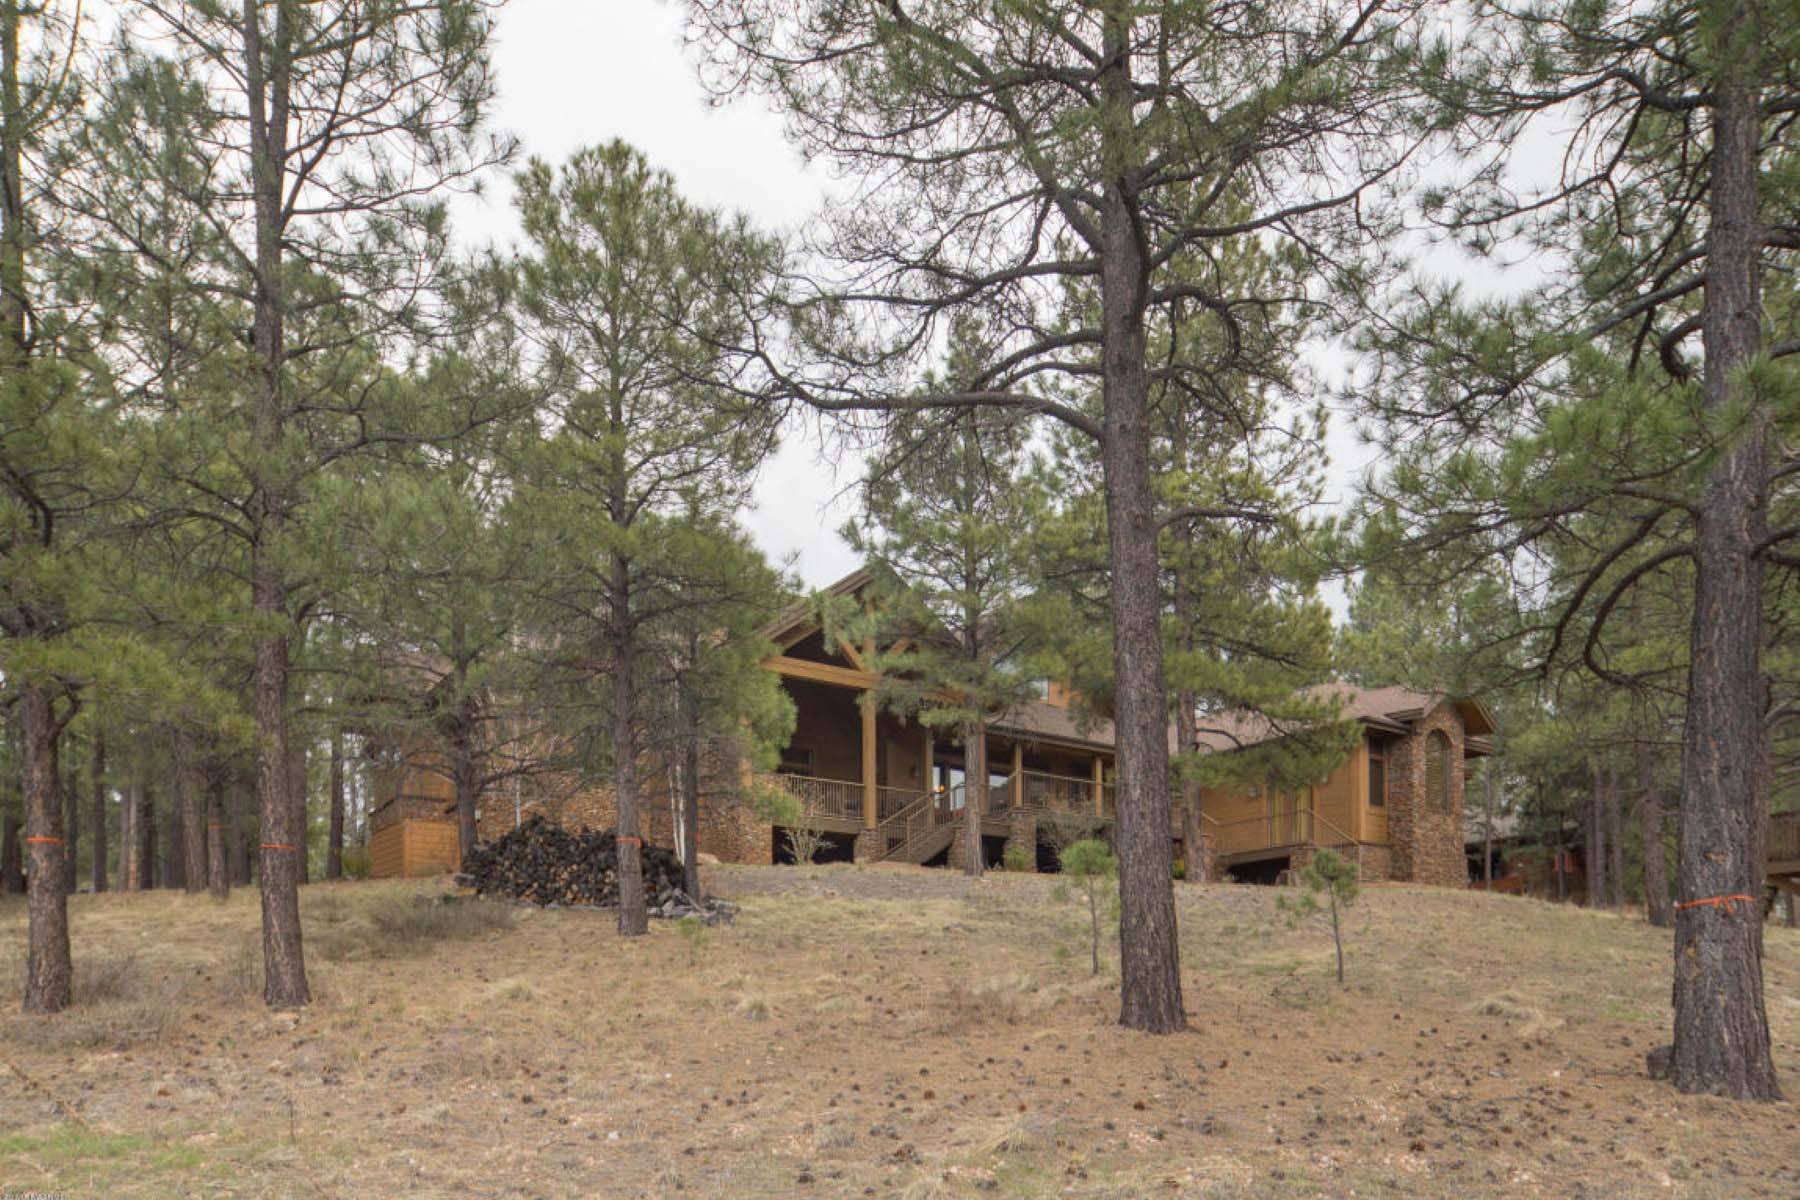 Single Family Home for Sale at Stunning mountain retreat in the community of Forest Highlands Golf Club. 2098 Cecil Richardson Flagstaff, Arizona 86005 United States